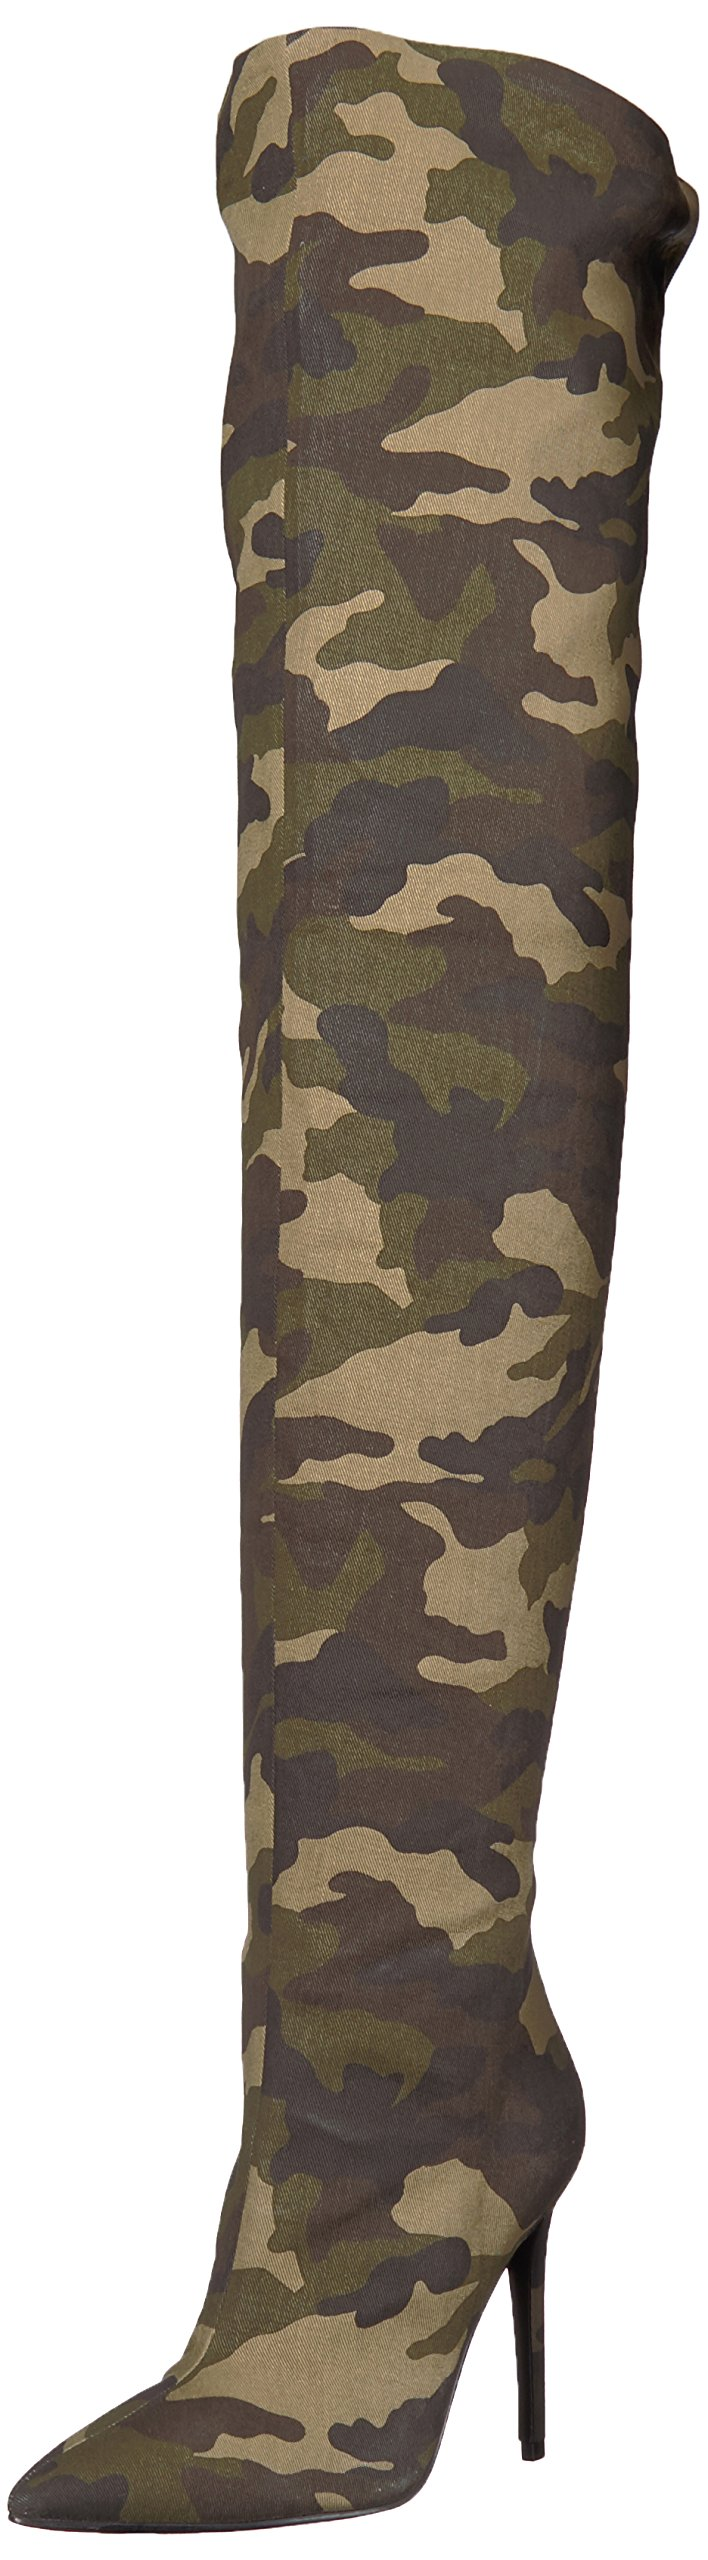 KENDALL + KYLIE Women's Alexx Fashion Boot, Camo, 9.5 Medium US